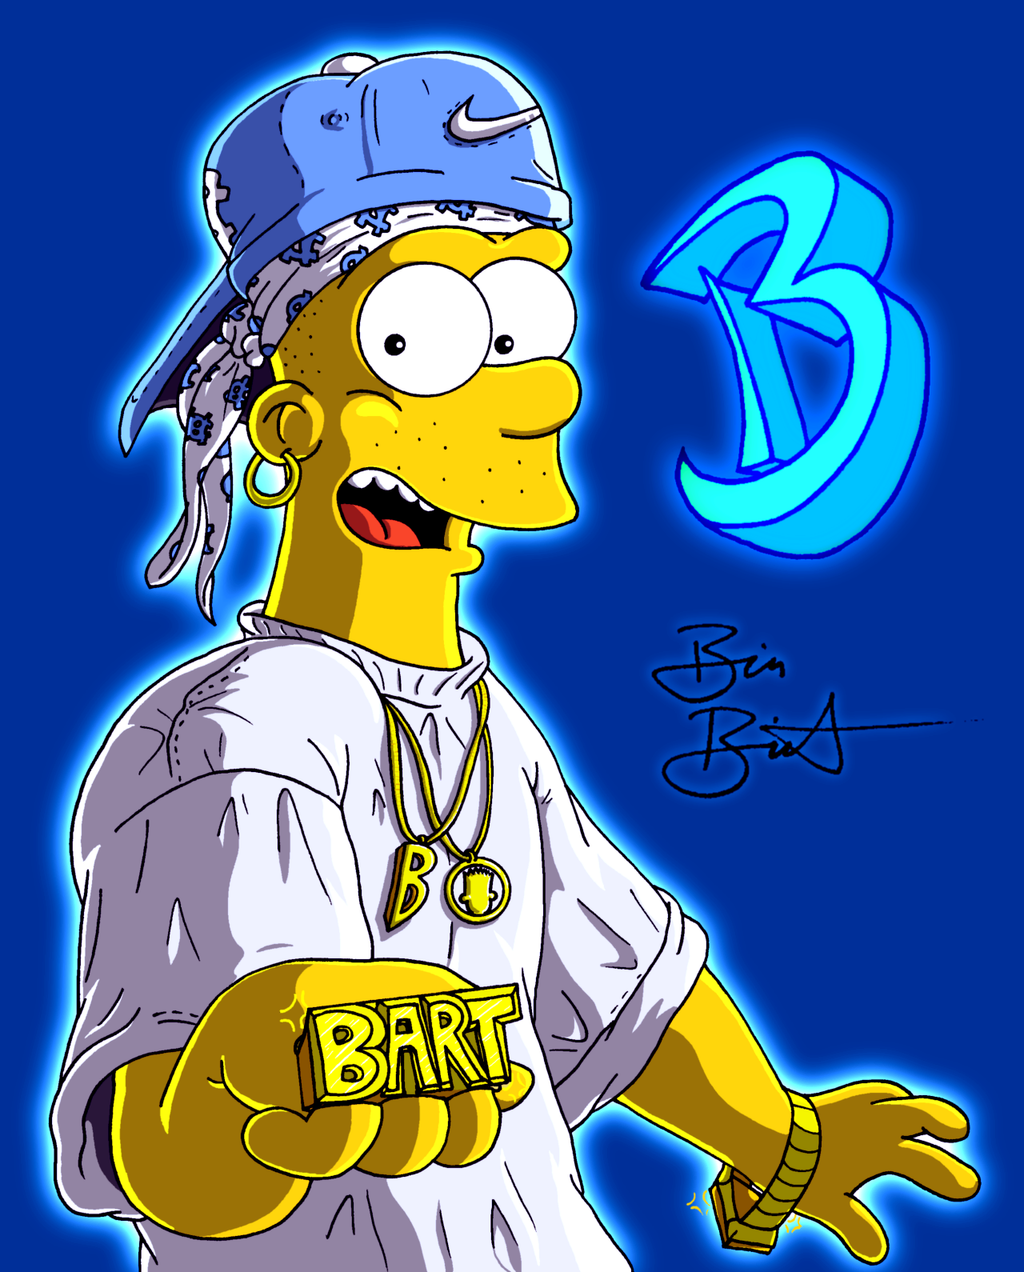 Bart Simpson hip hop, poster Young B-Zay - 2007 by Simpsonizer on ...